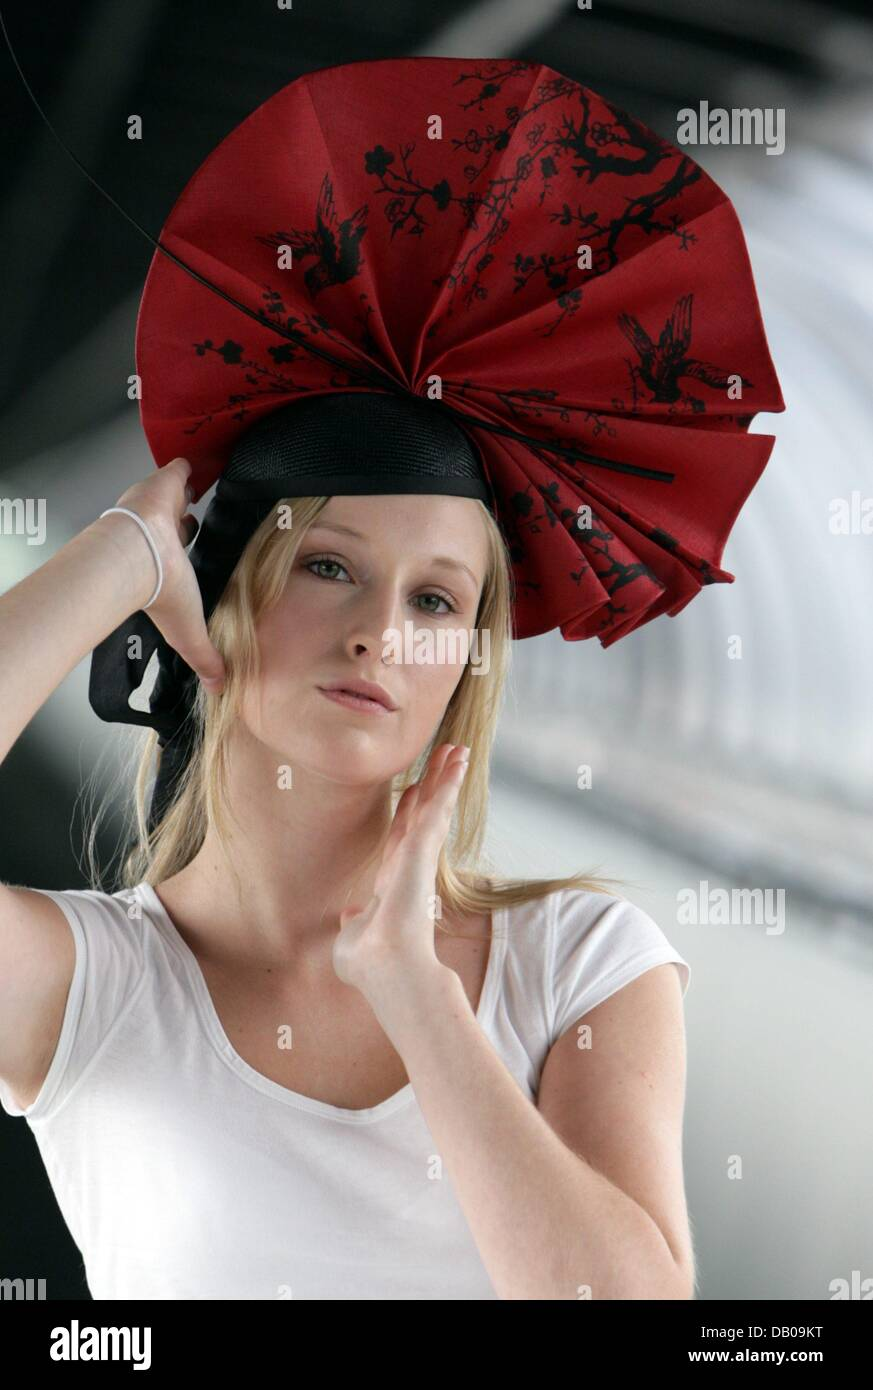 Model Juliane poses with the hat creation 'Sunset Glow' by Svenja Otten of 'Hutsalon Schmedes' at - Stock Image